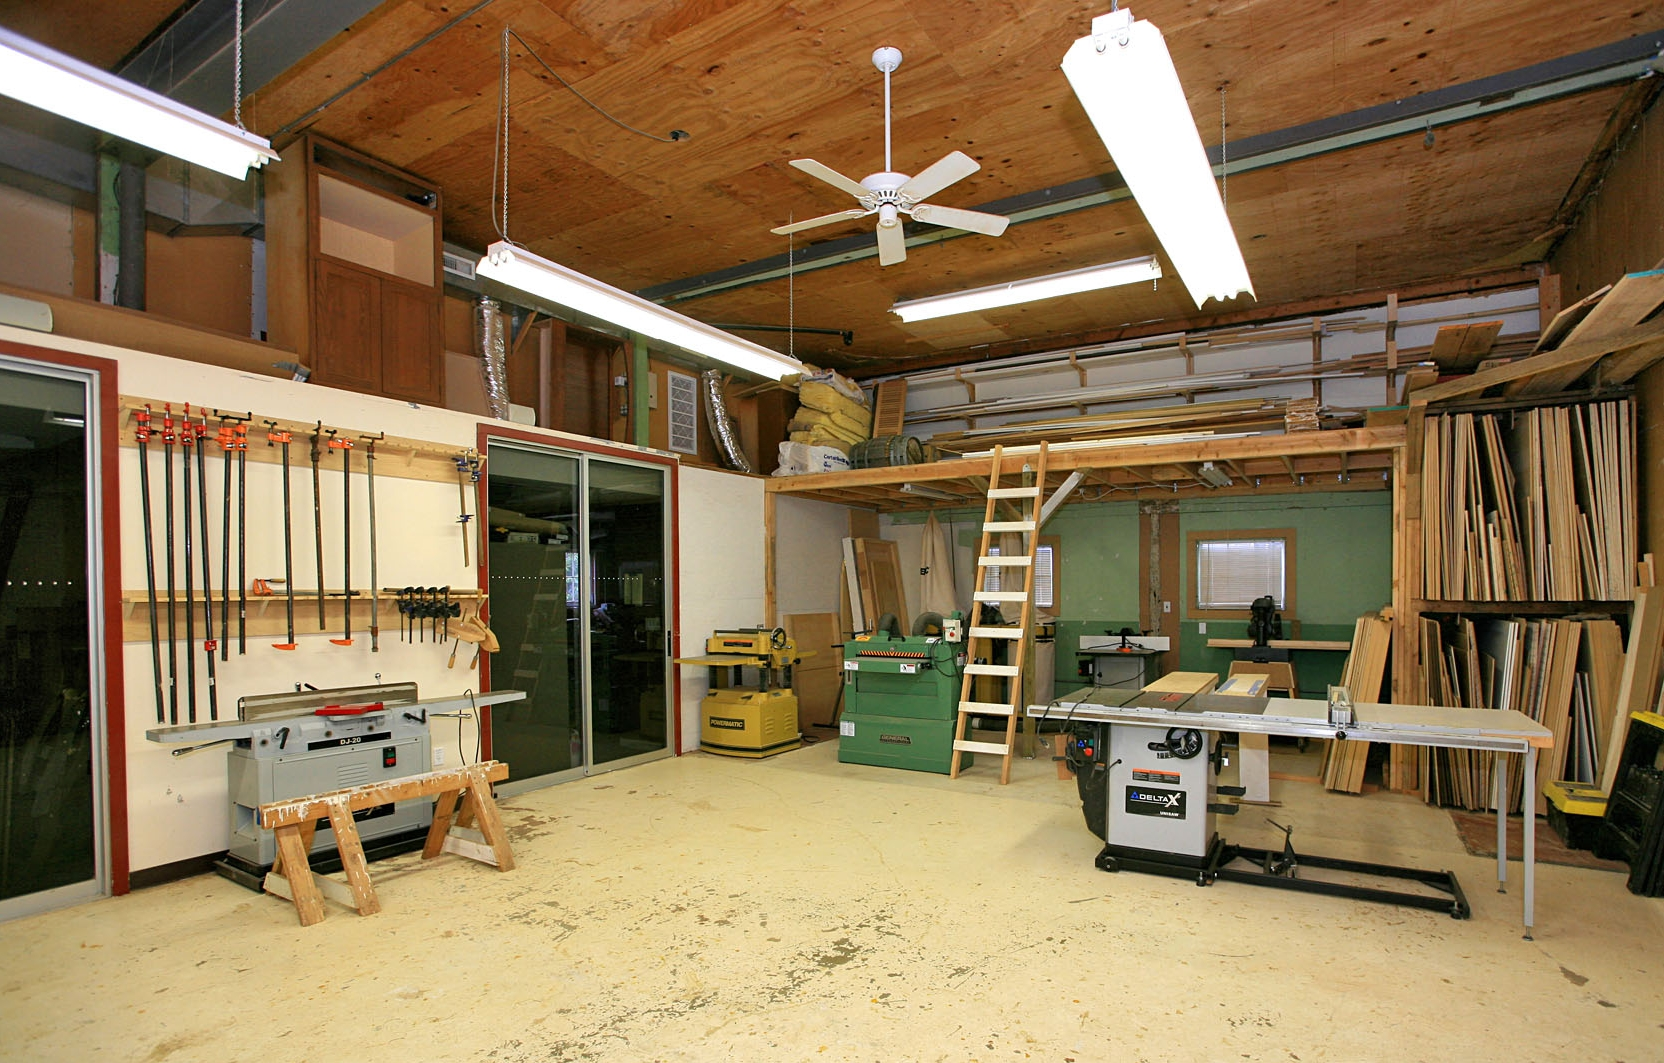 Titus Built Millwork and custom cabnitry